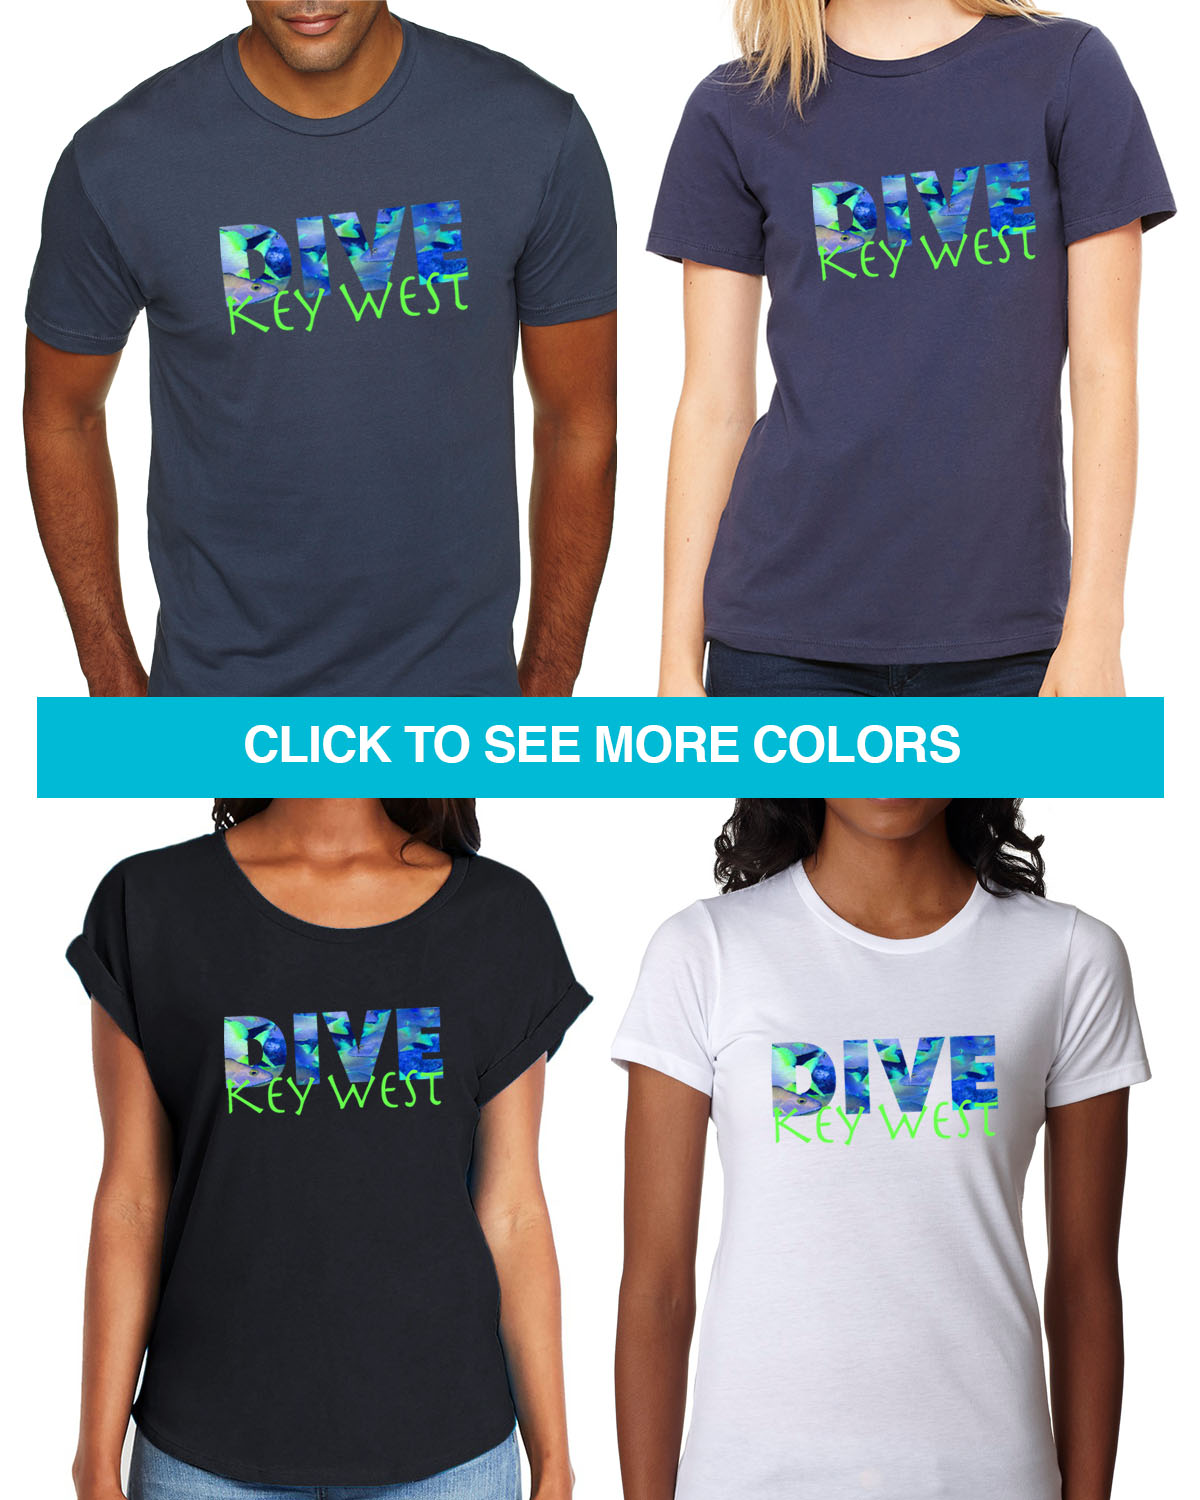 DIVE Key West Tees for Men & Women